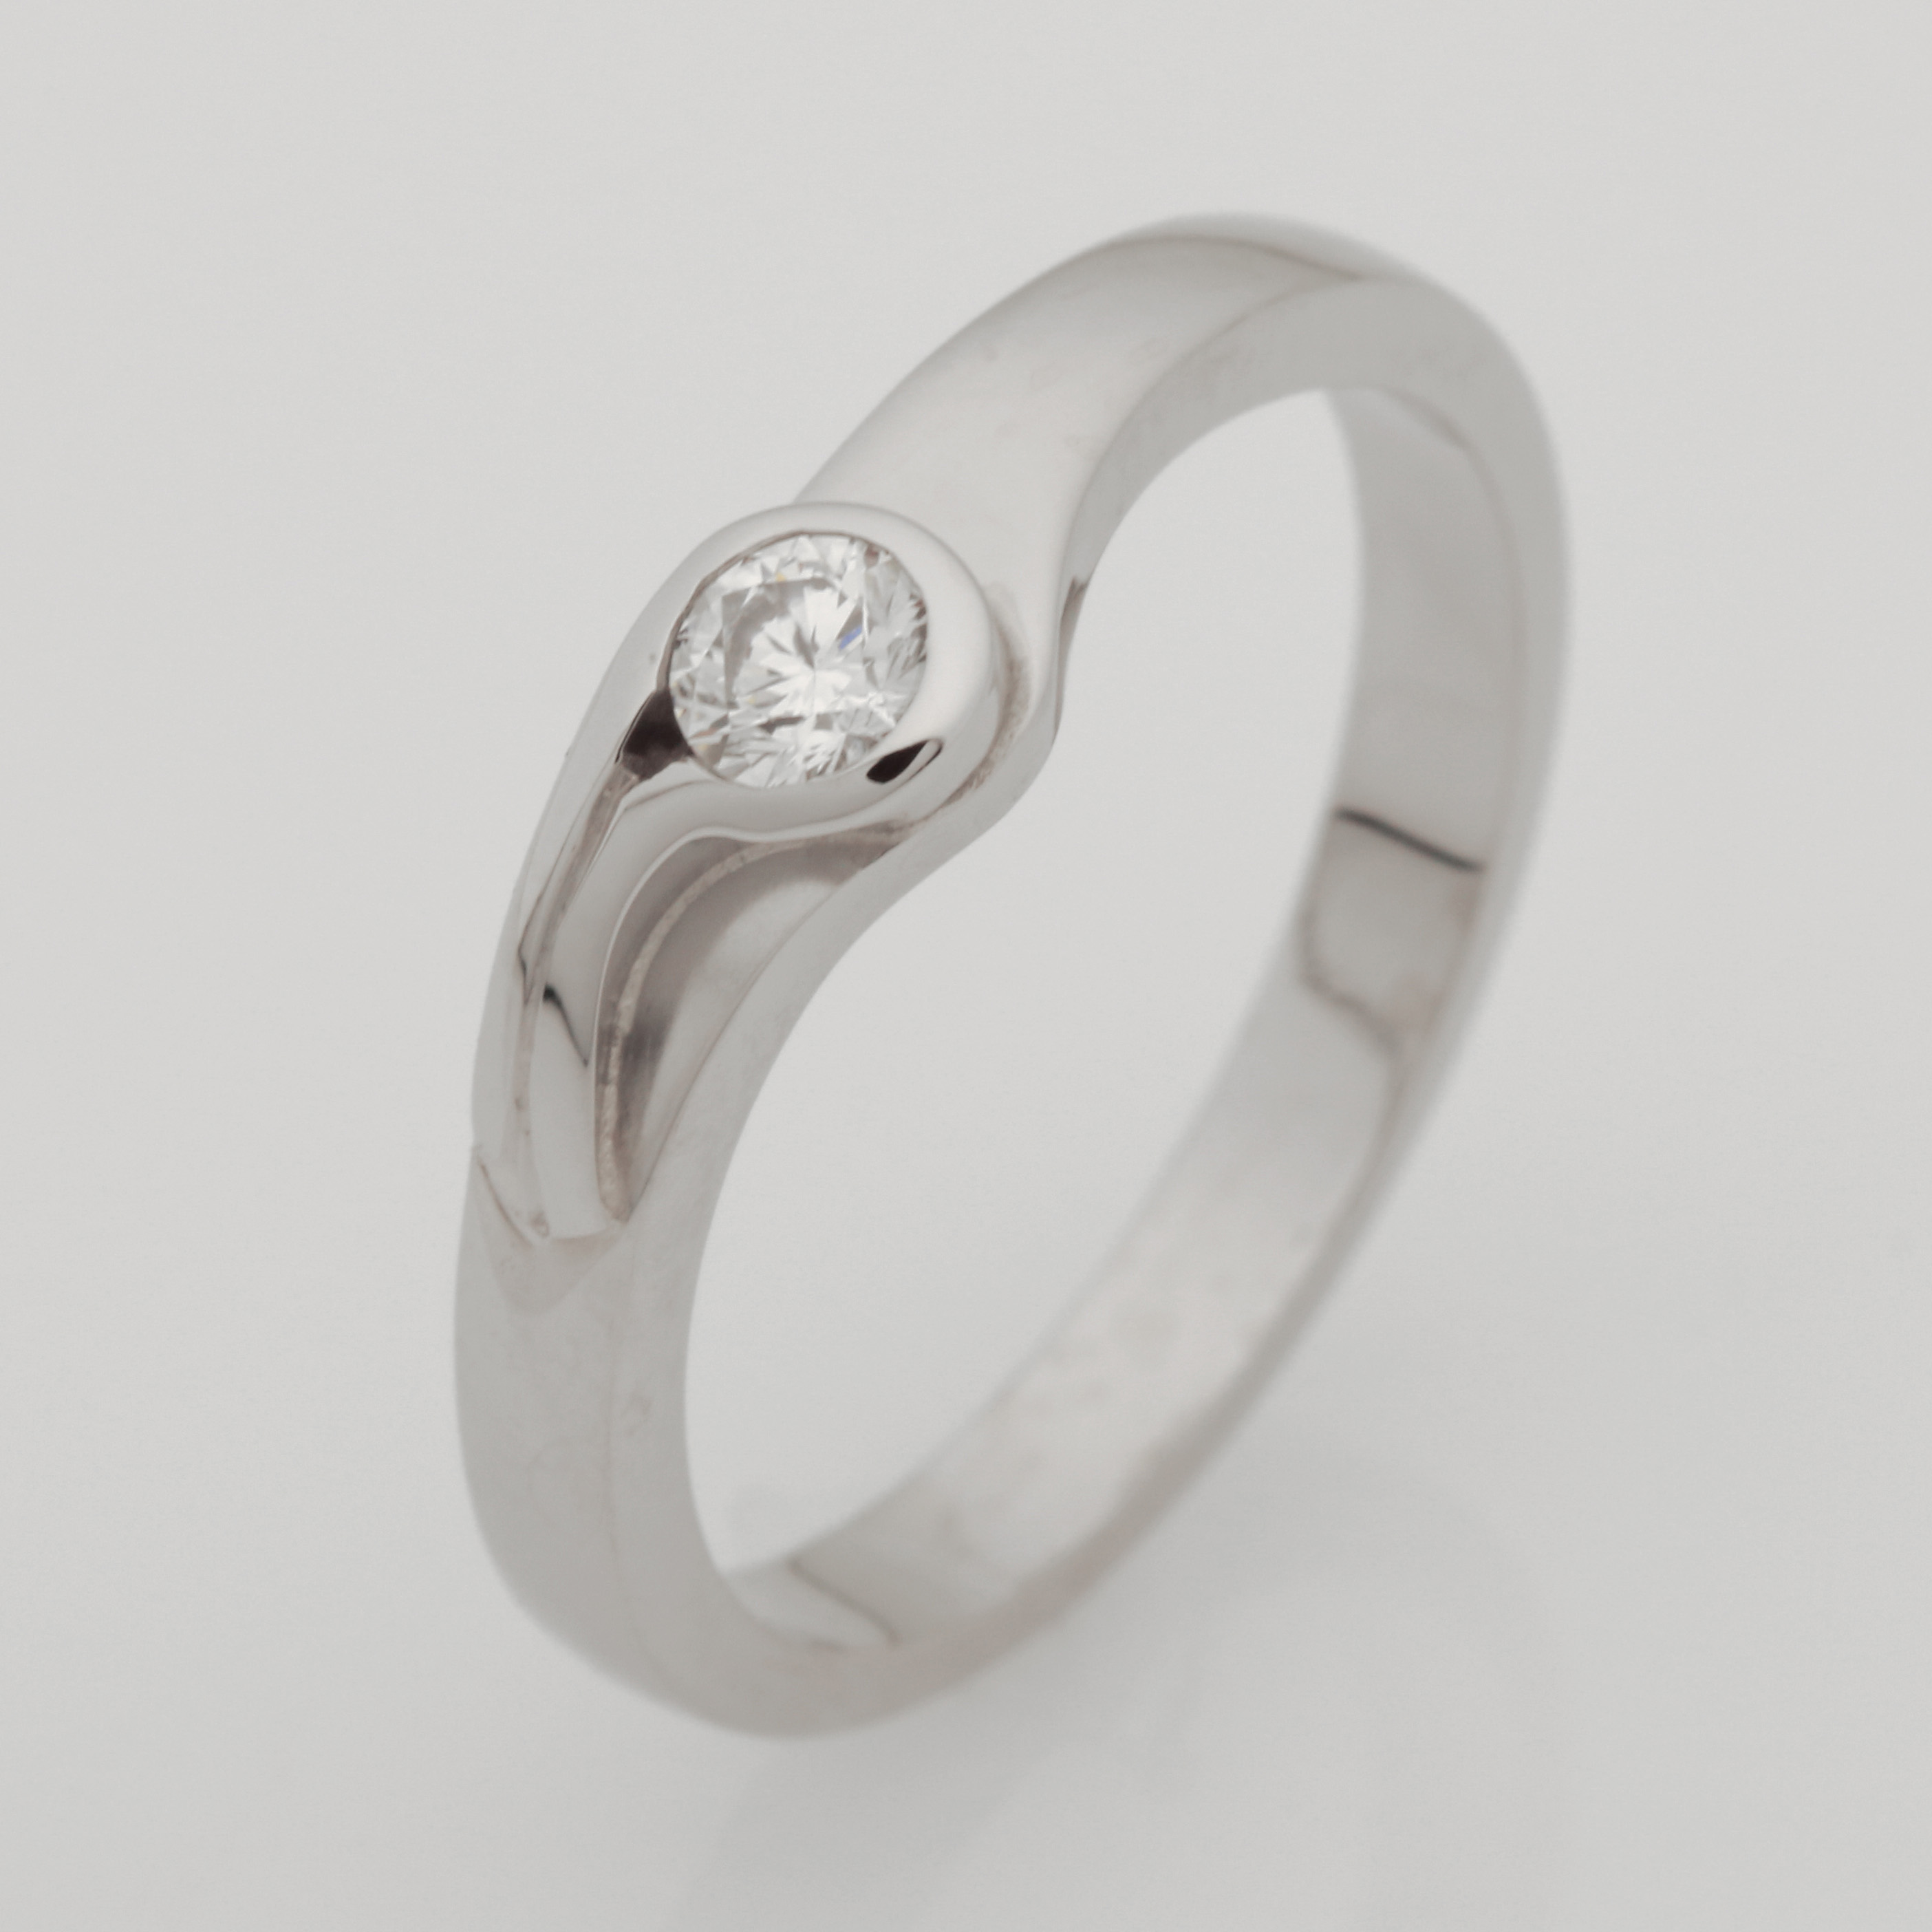 Ladies handmade palladium diamond ring